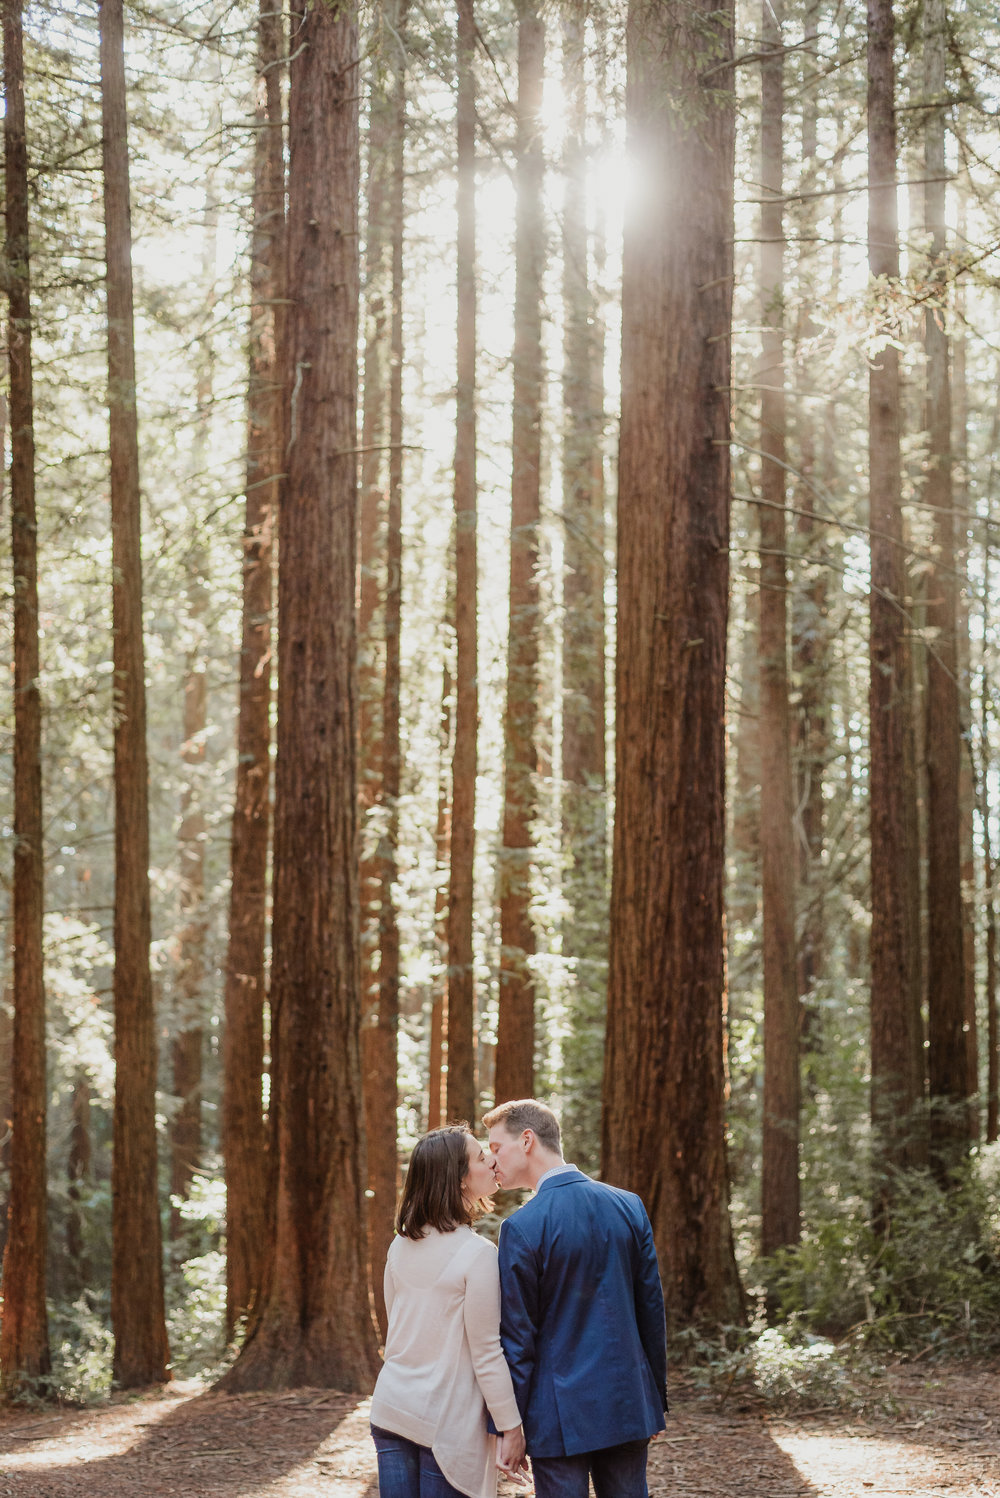 oakland-redwood-regional-park-engagement-session-mr-vivianchen-018.jpg